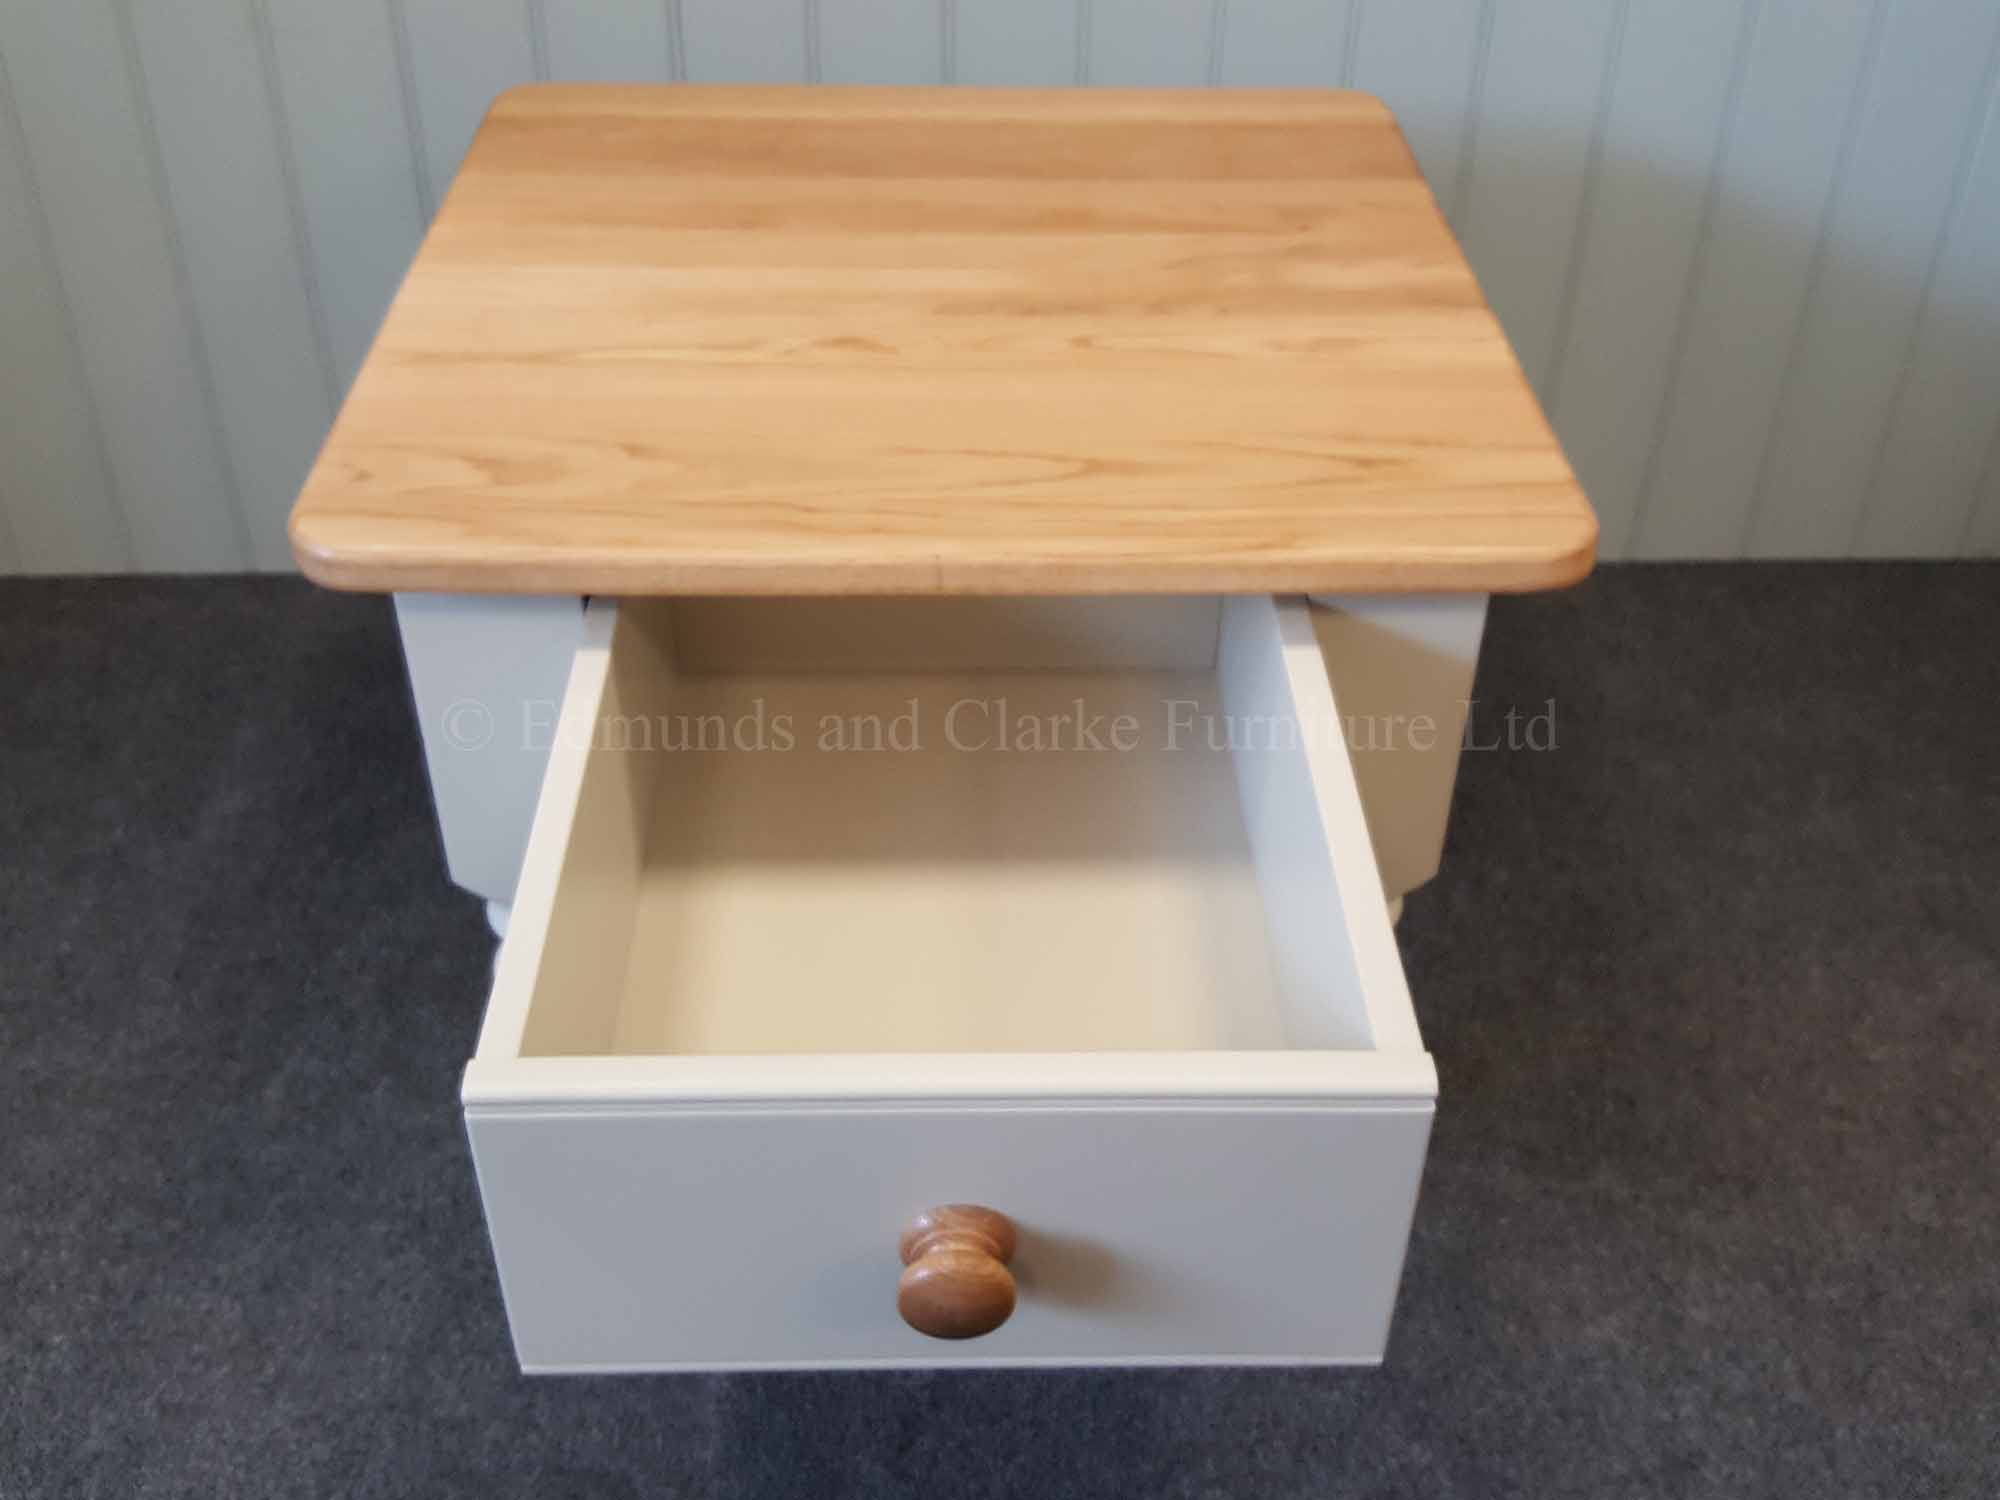 Painted coffee table large drawer 2' x 2' turned legs oak top